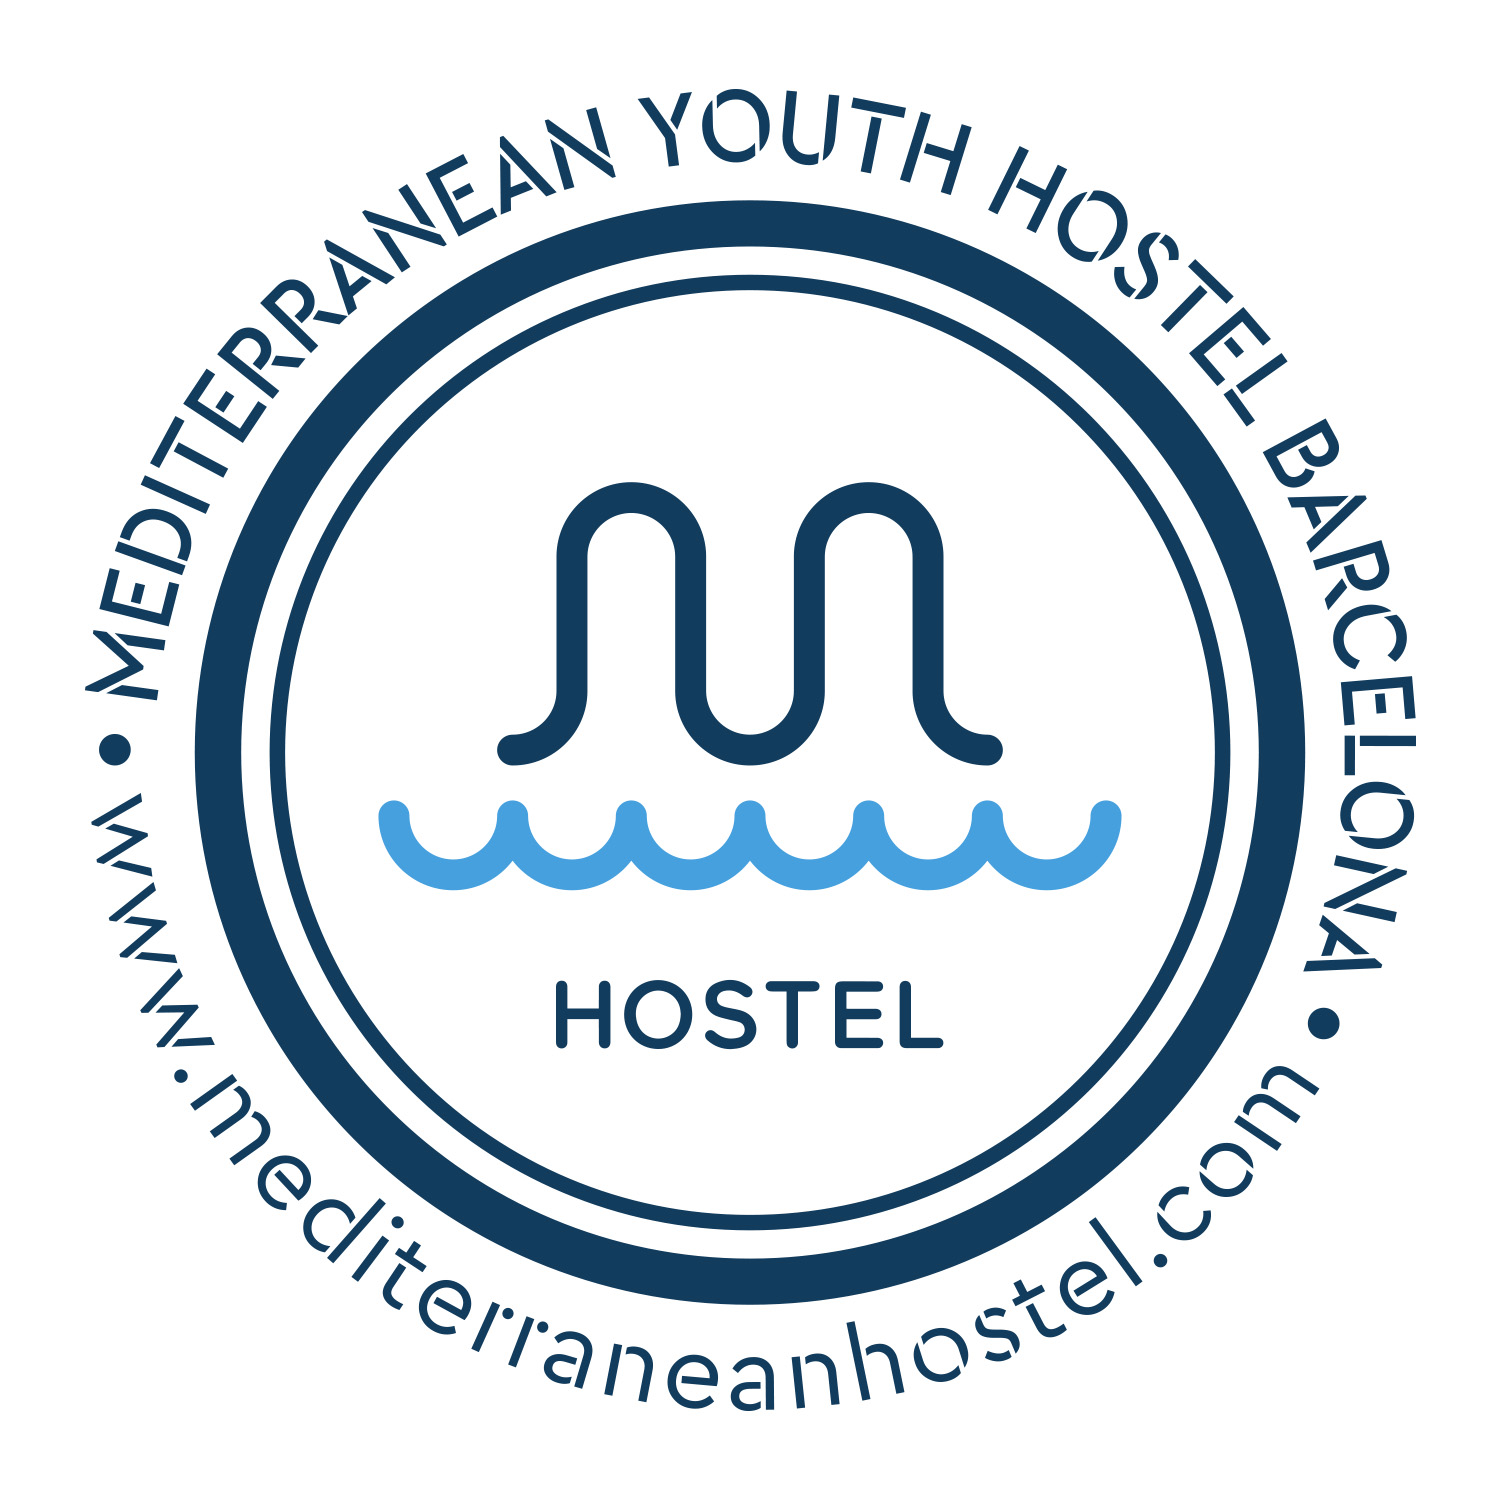 Mediterranean Youth Hostel